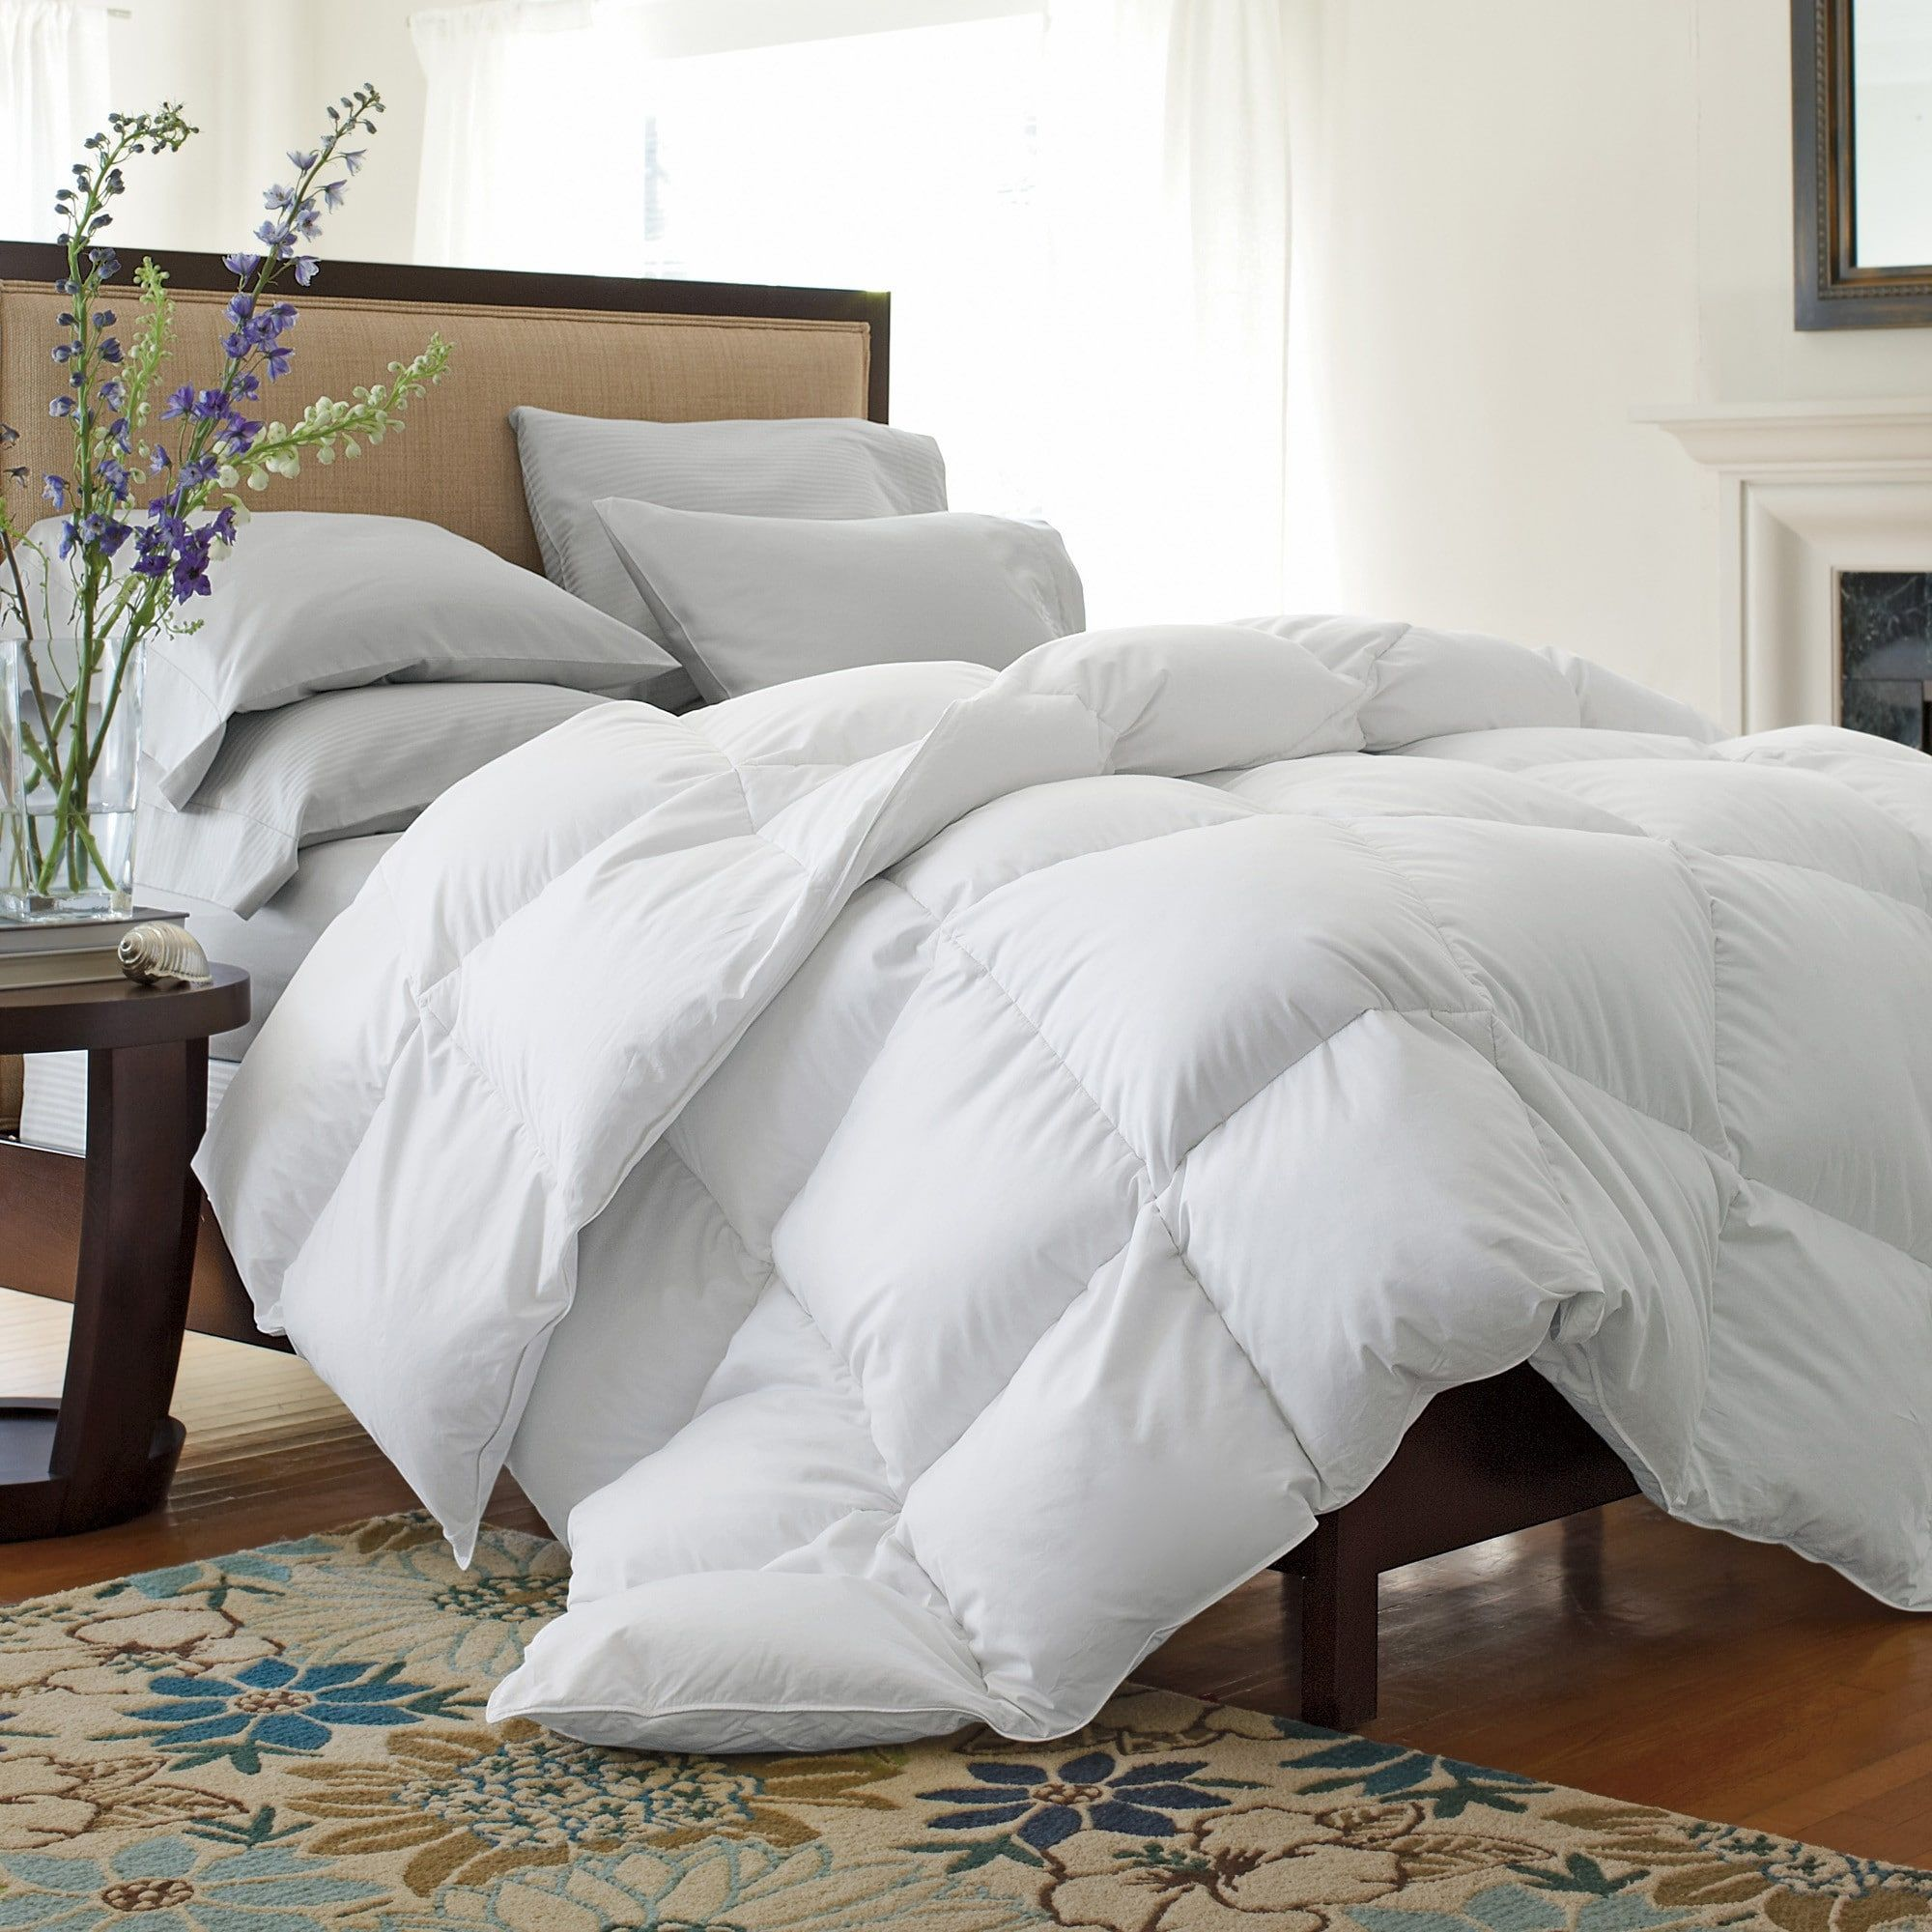 basic down beyond year season cover comforters warm queen all p round goose comforter best the